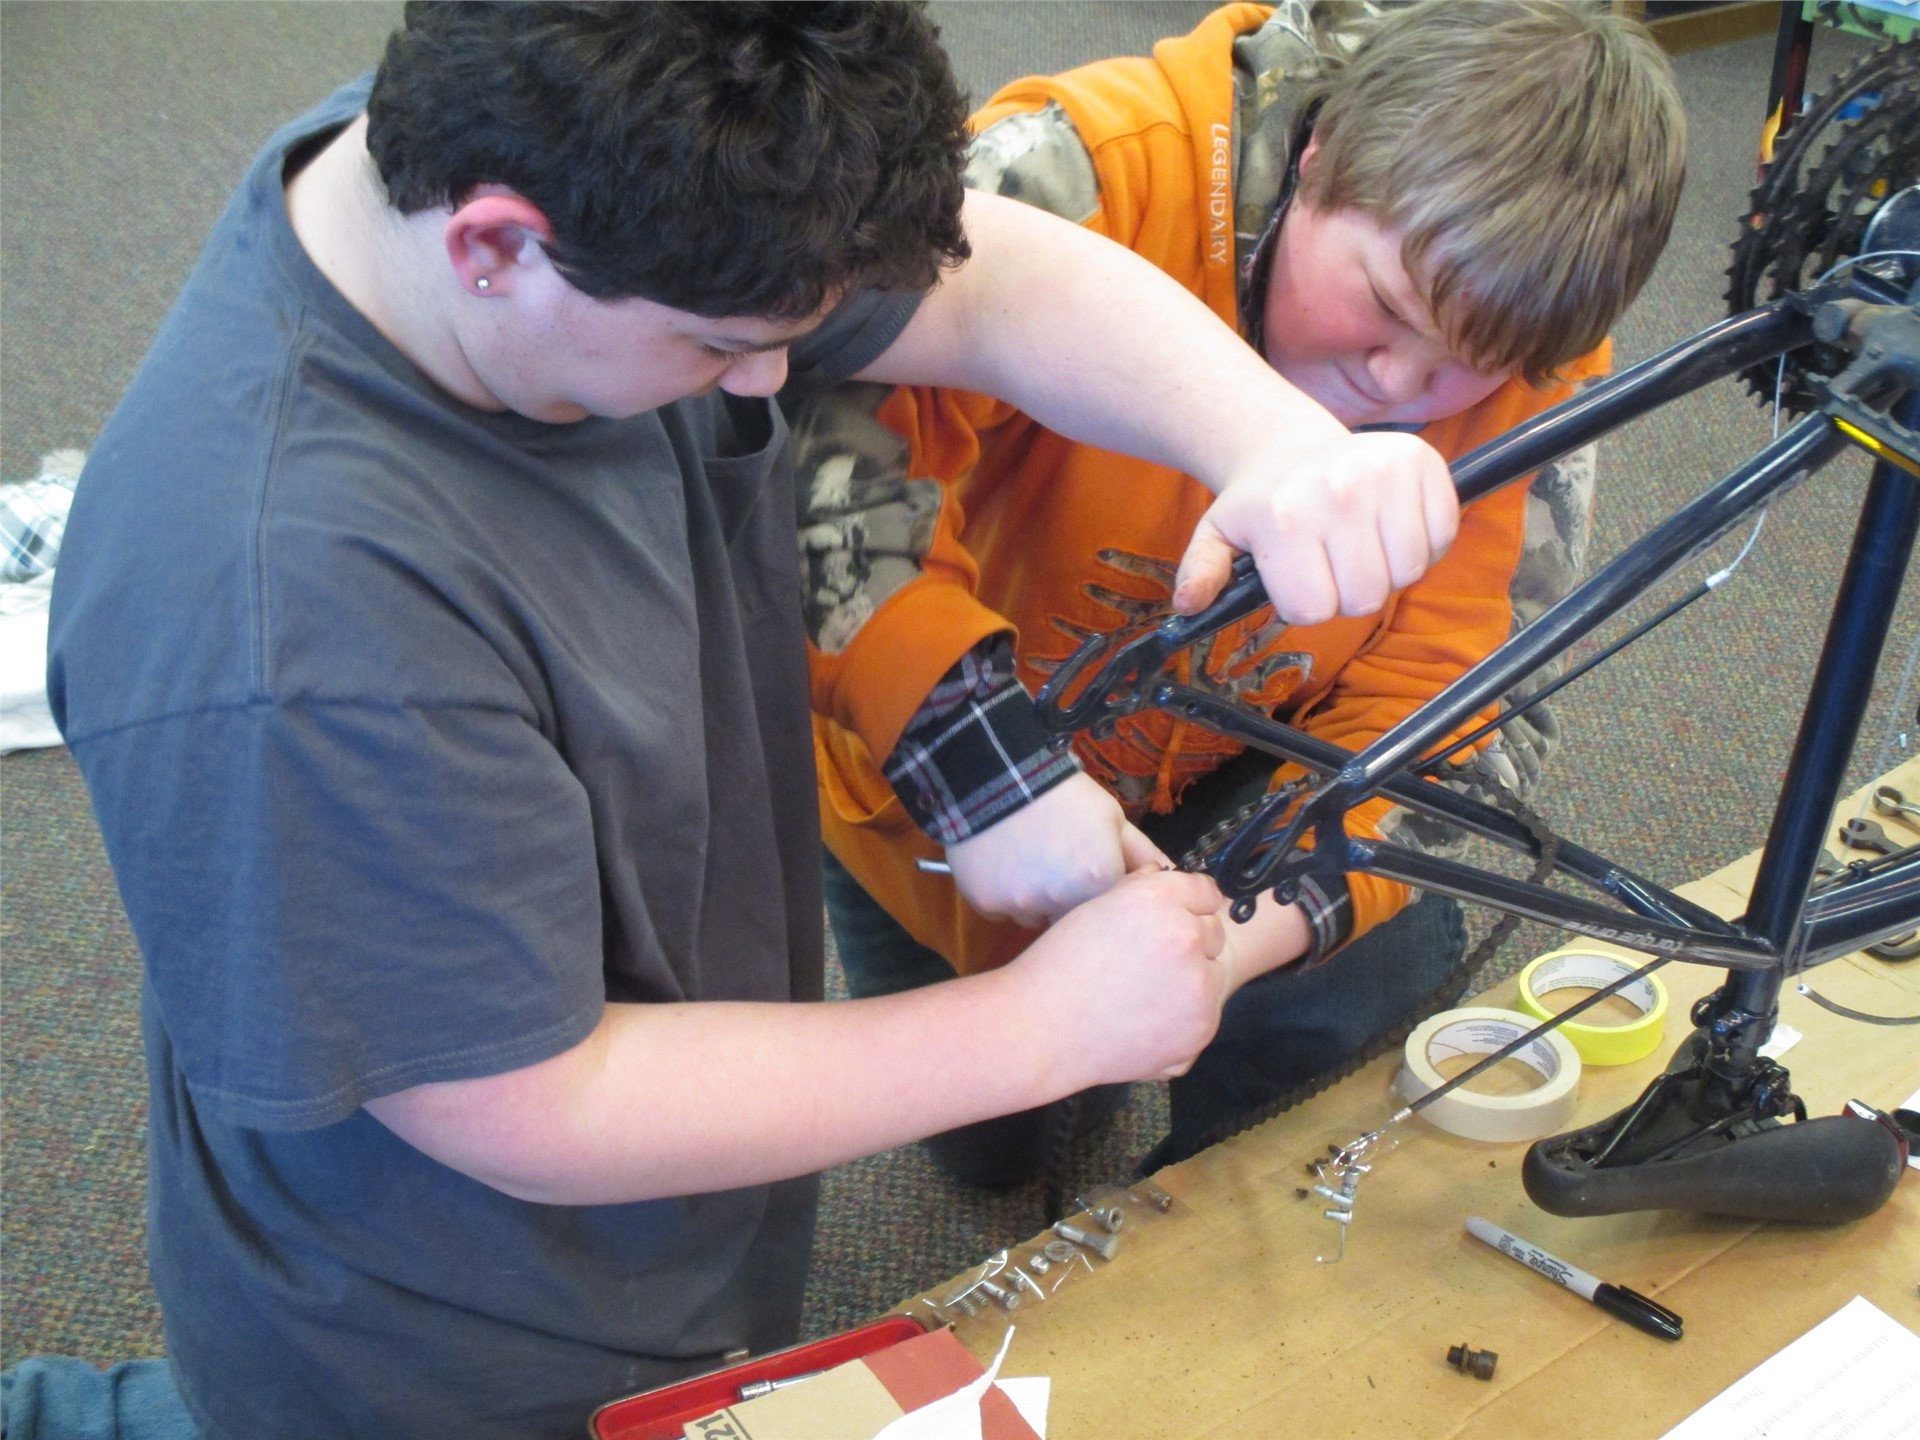 Image of study hall students in the library MakerSpace  disassembling a bicycle.